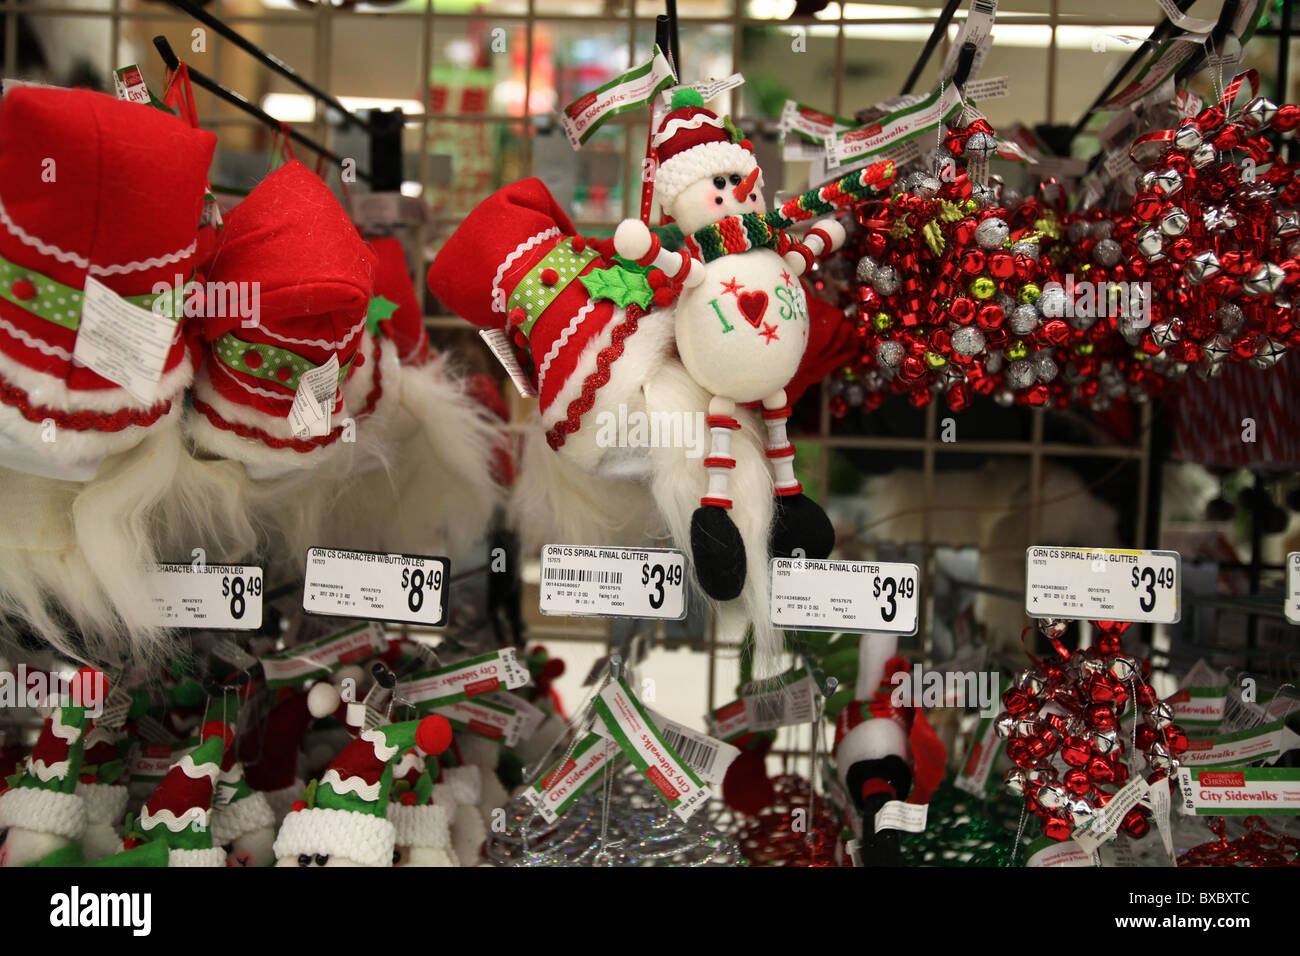 Michaels Christmas Ornaments.Christmas Hats And Ornaments For Sale In Michael S Store In